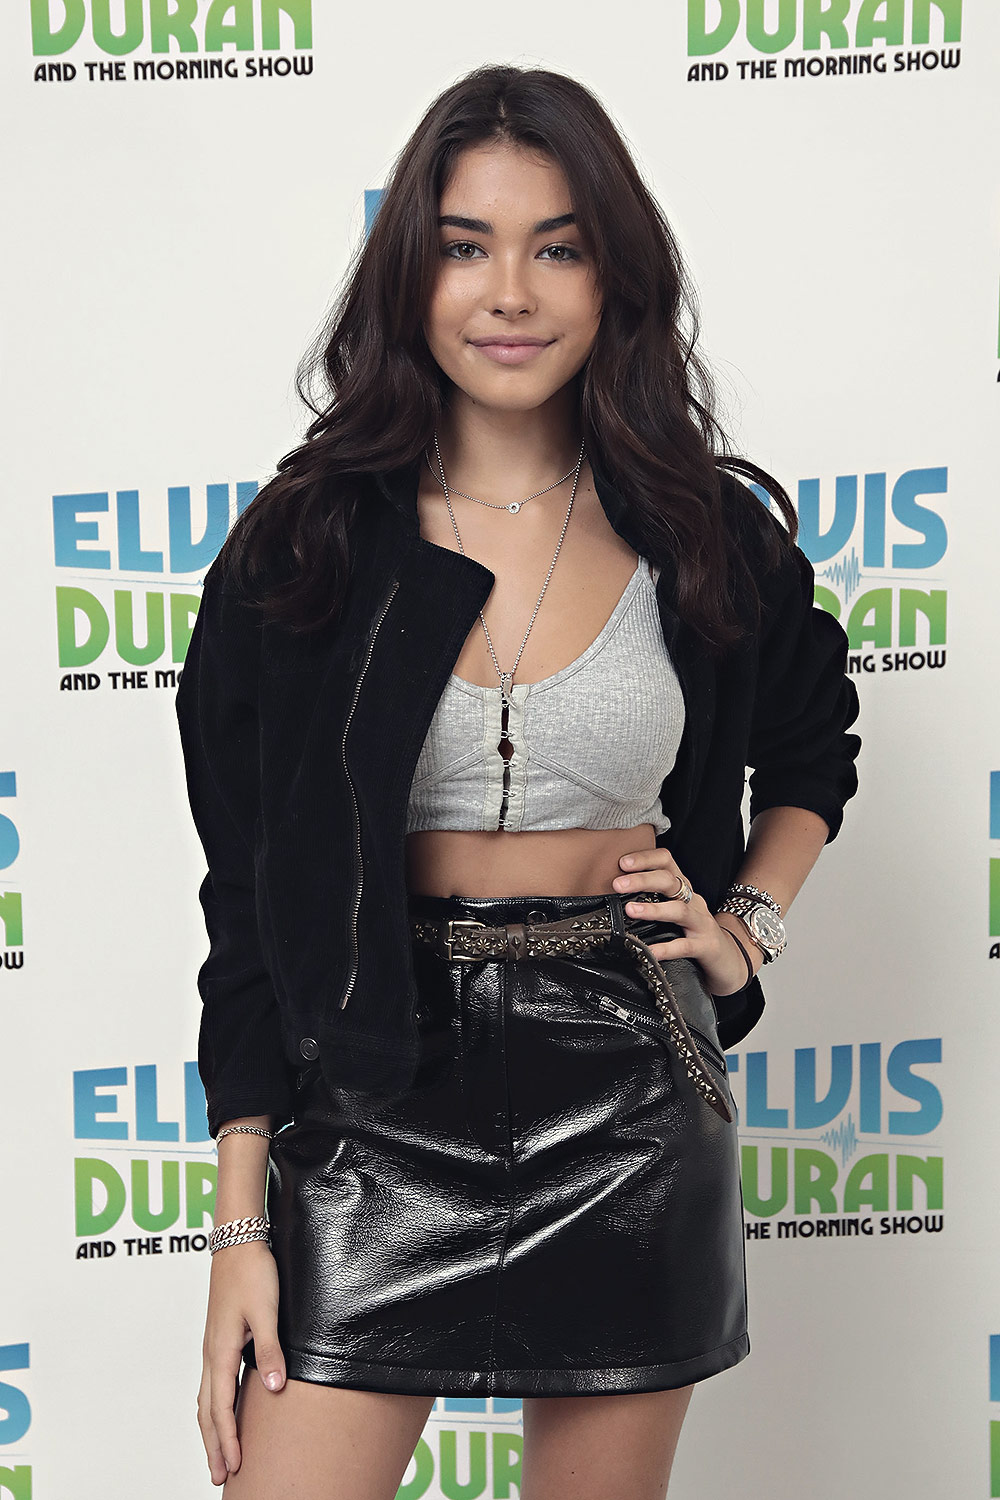 Madison Beer exiting Z100